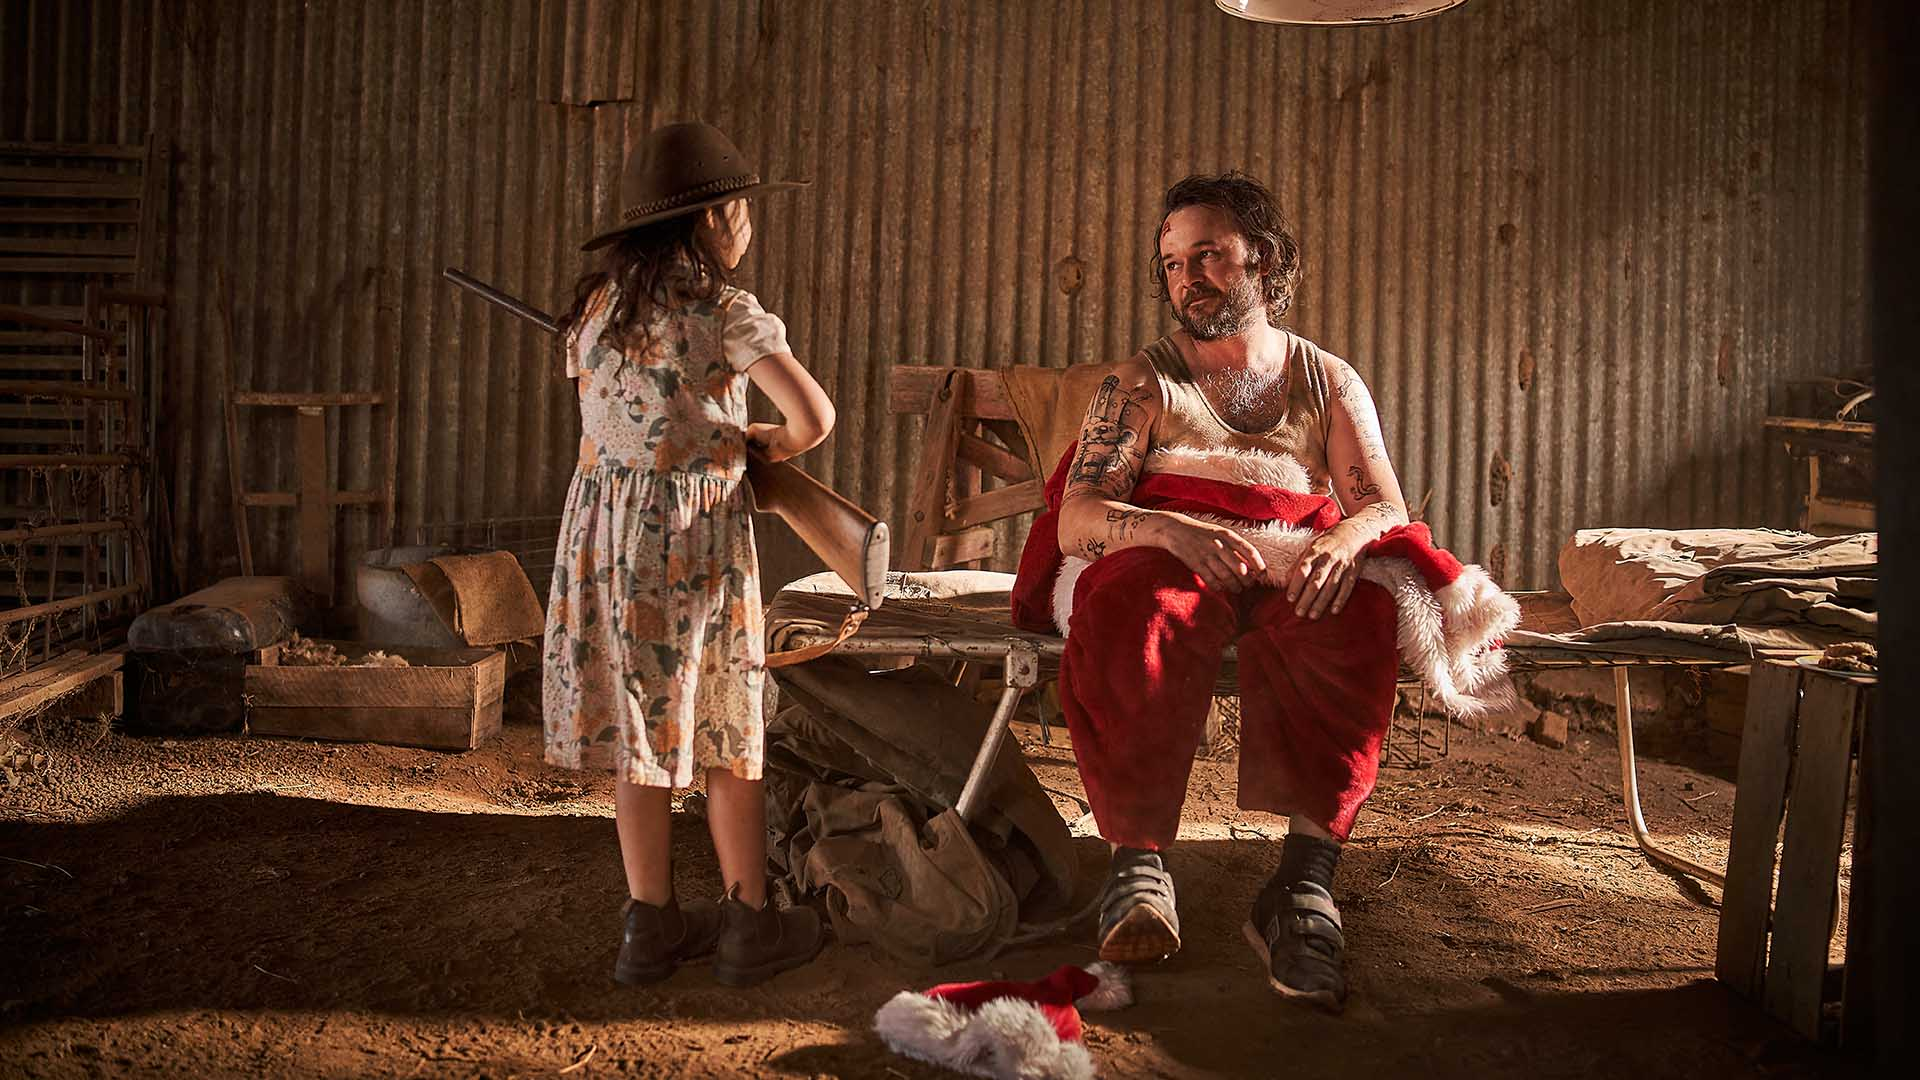 Stan Is Gifting Festive New Aussie Comedy 'A Sunburnt Christmas' to Your End-of-Year Streaming Queue